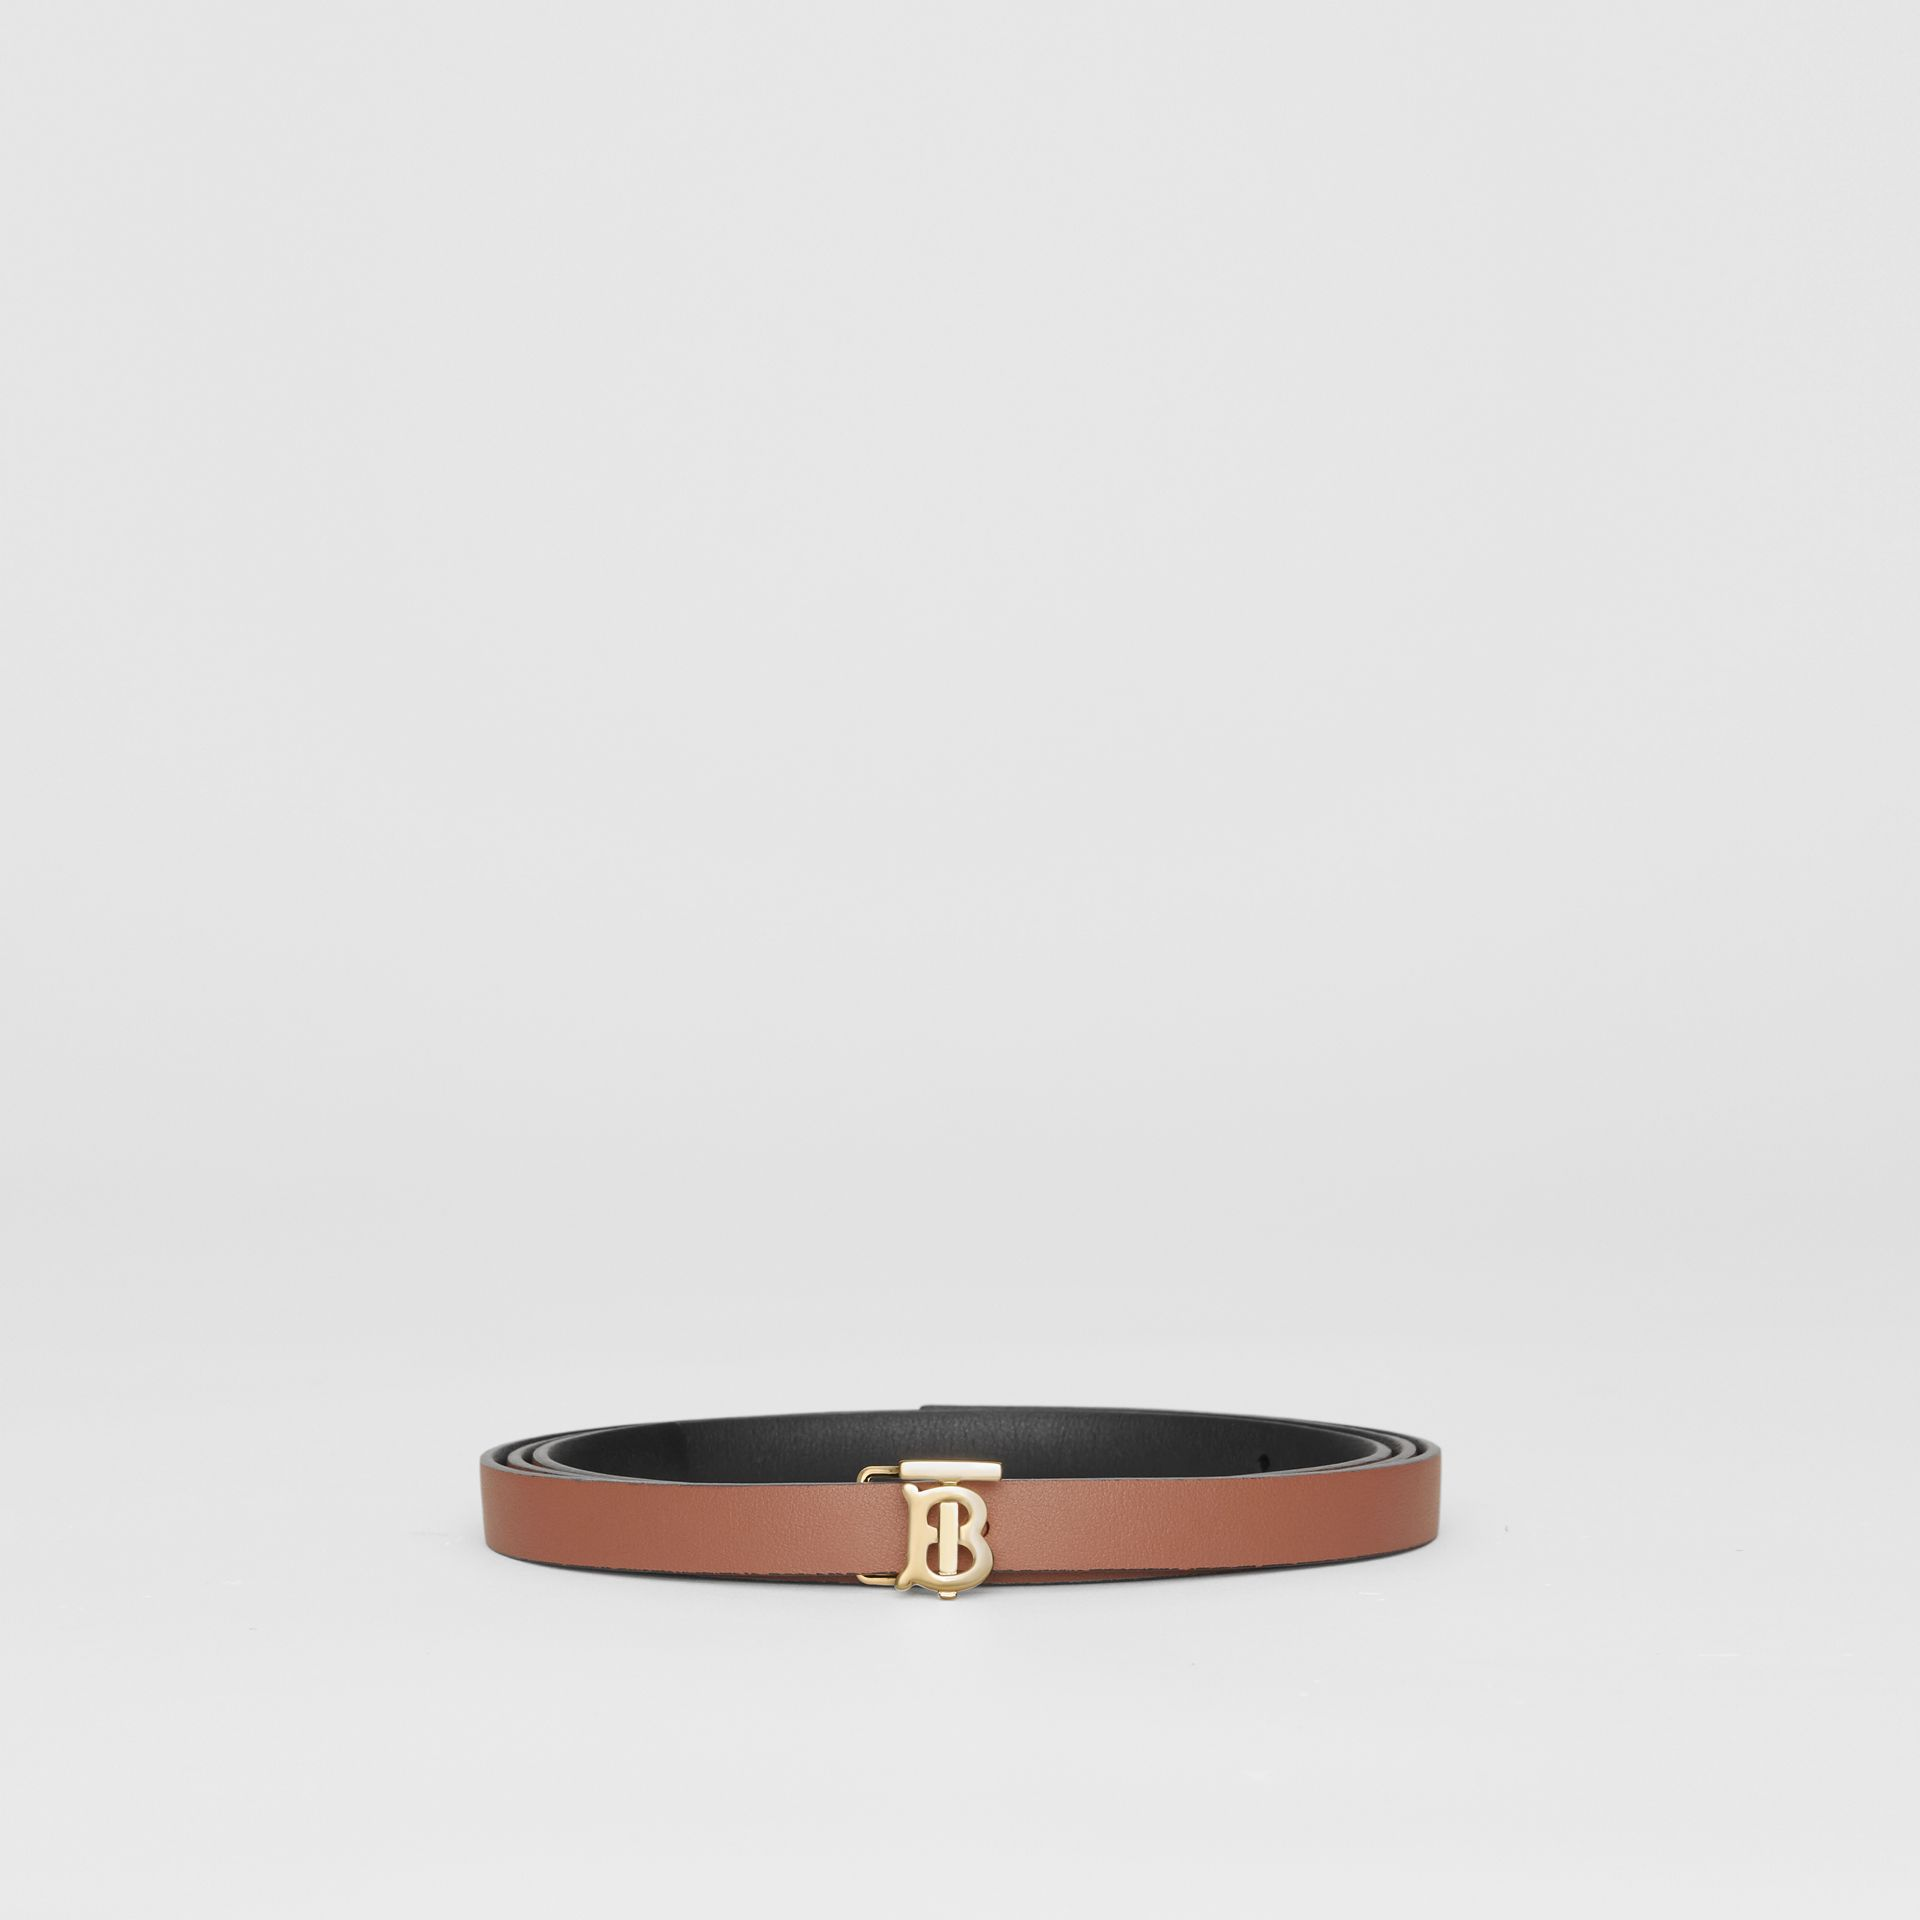 Reversible Monogram Motif Leather Wrap Belt in Black/malt Brown - Women | Burberry United Kingdom - gallery image 6